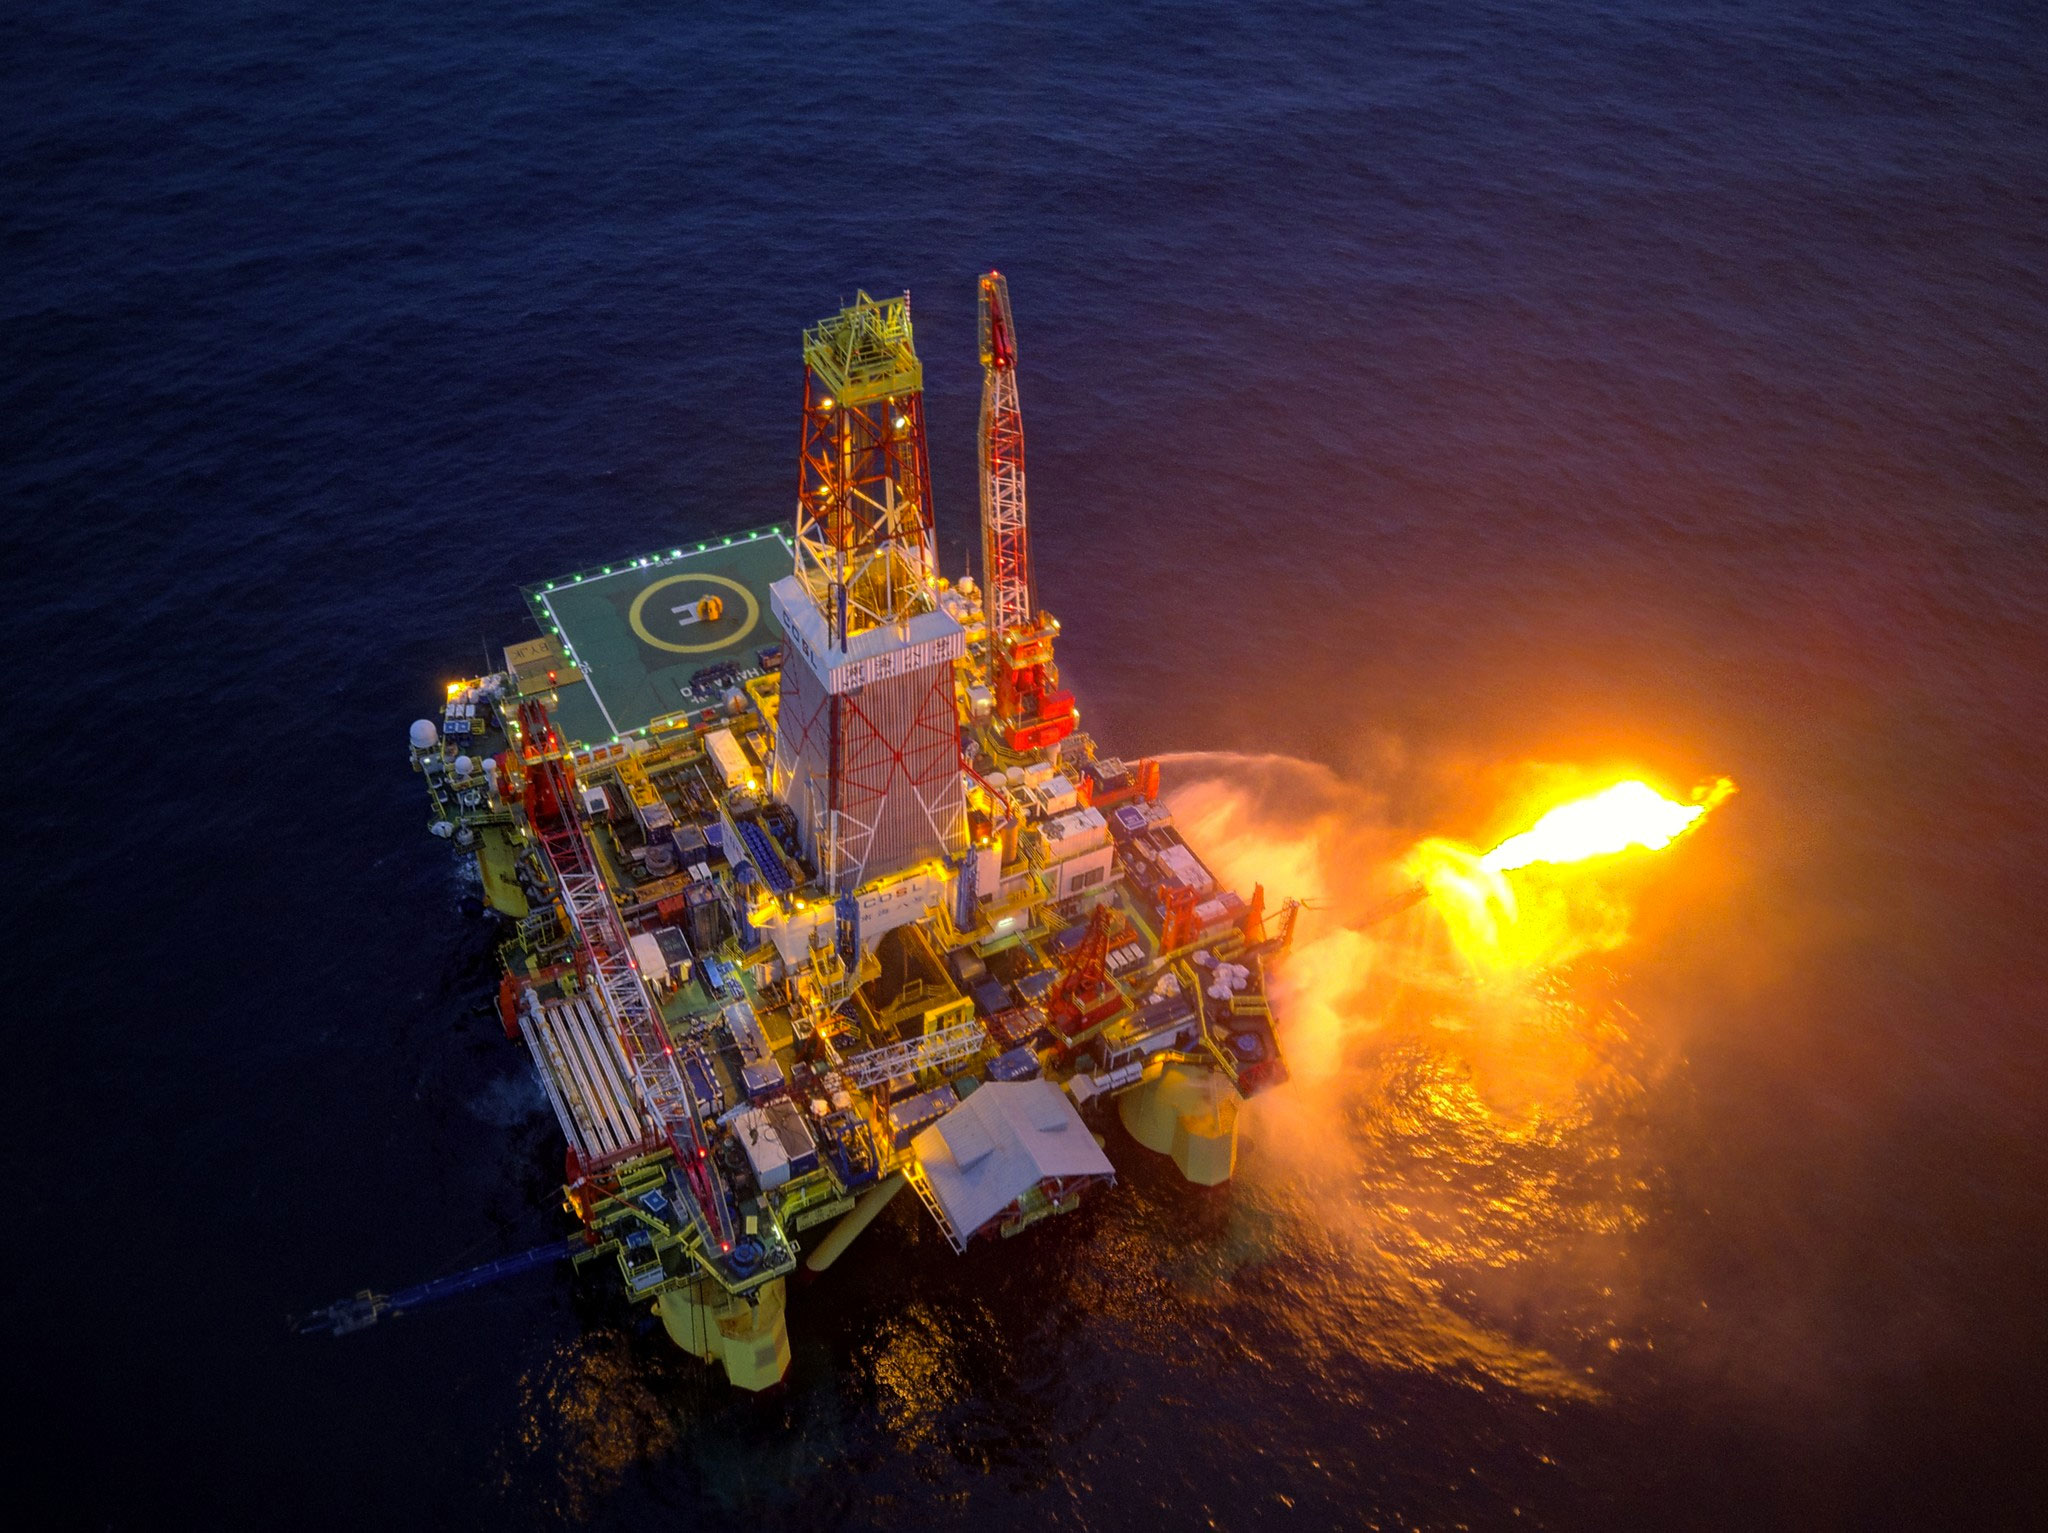 Chinese rig makes second large discovery in Russian Arctic waters